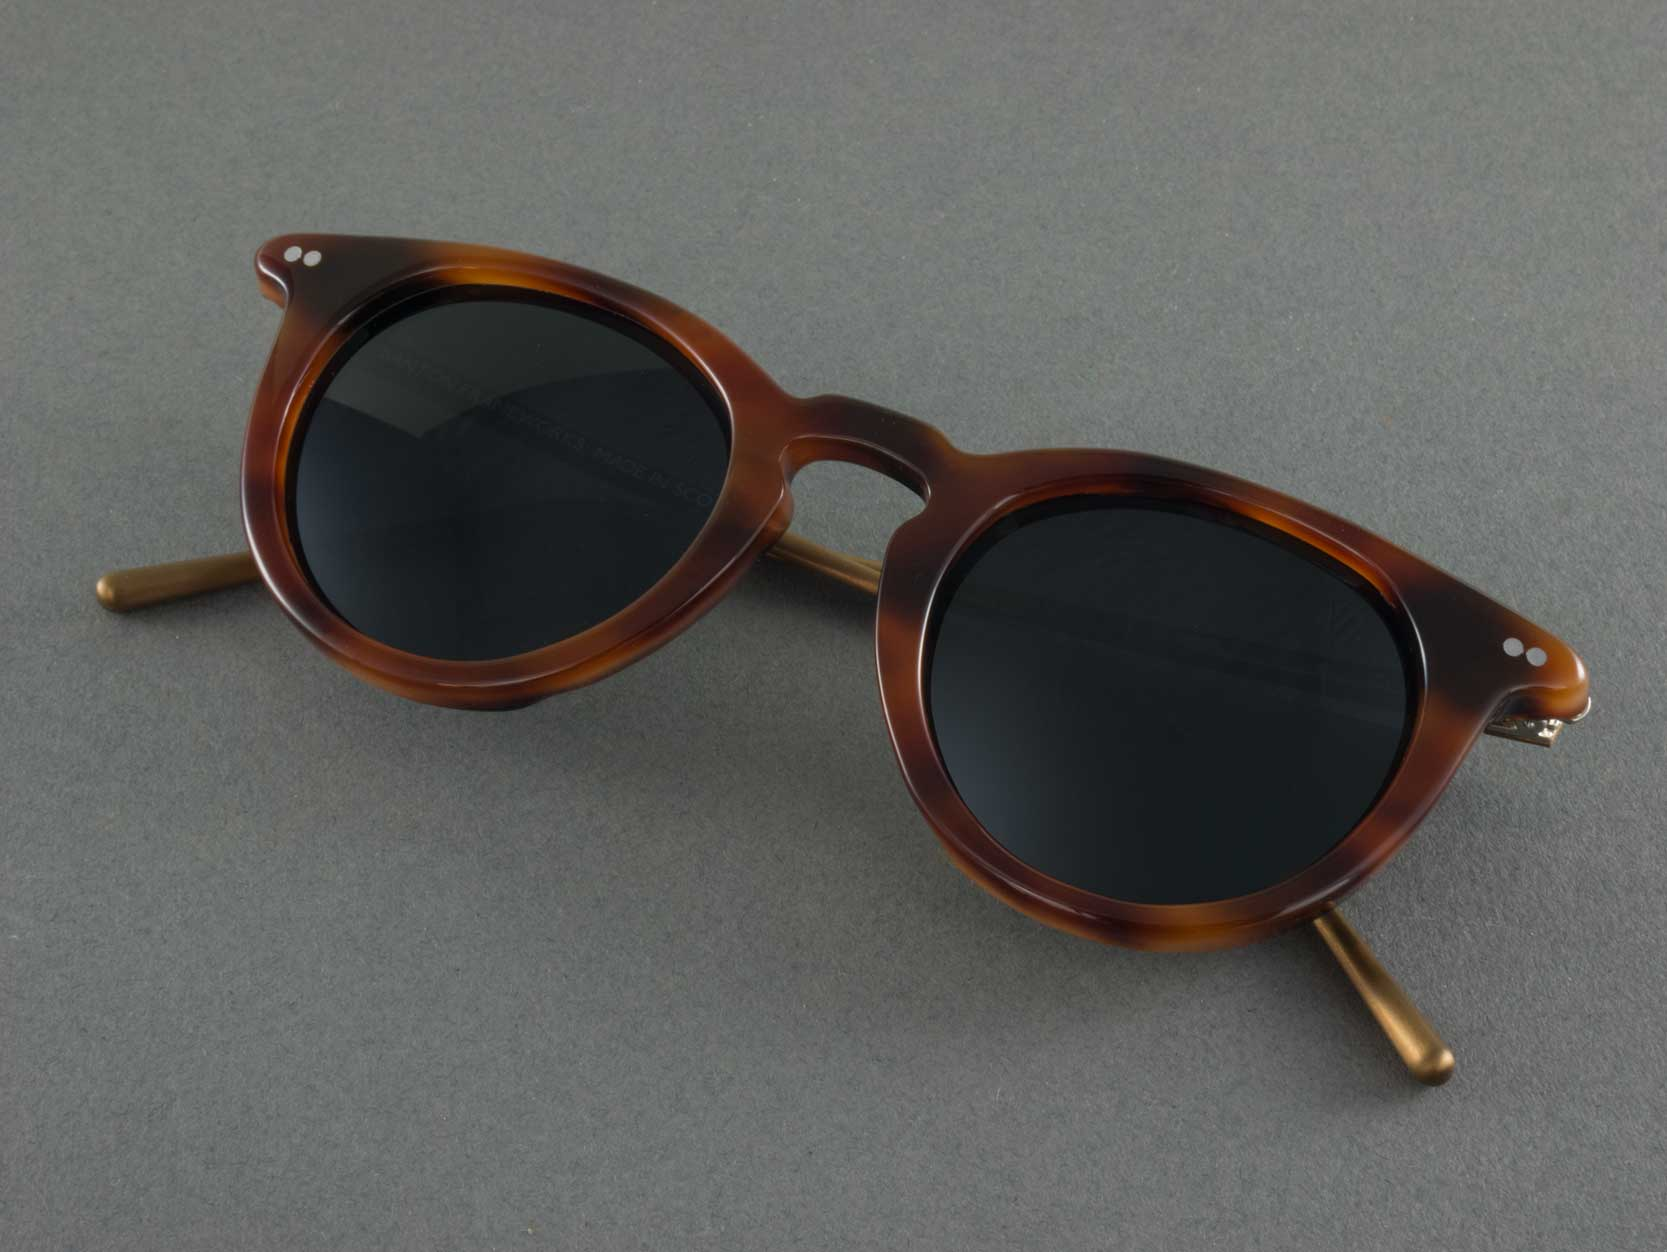 Round polarised sunglasses frame folded